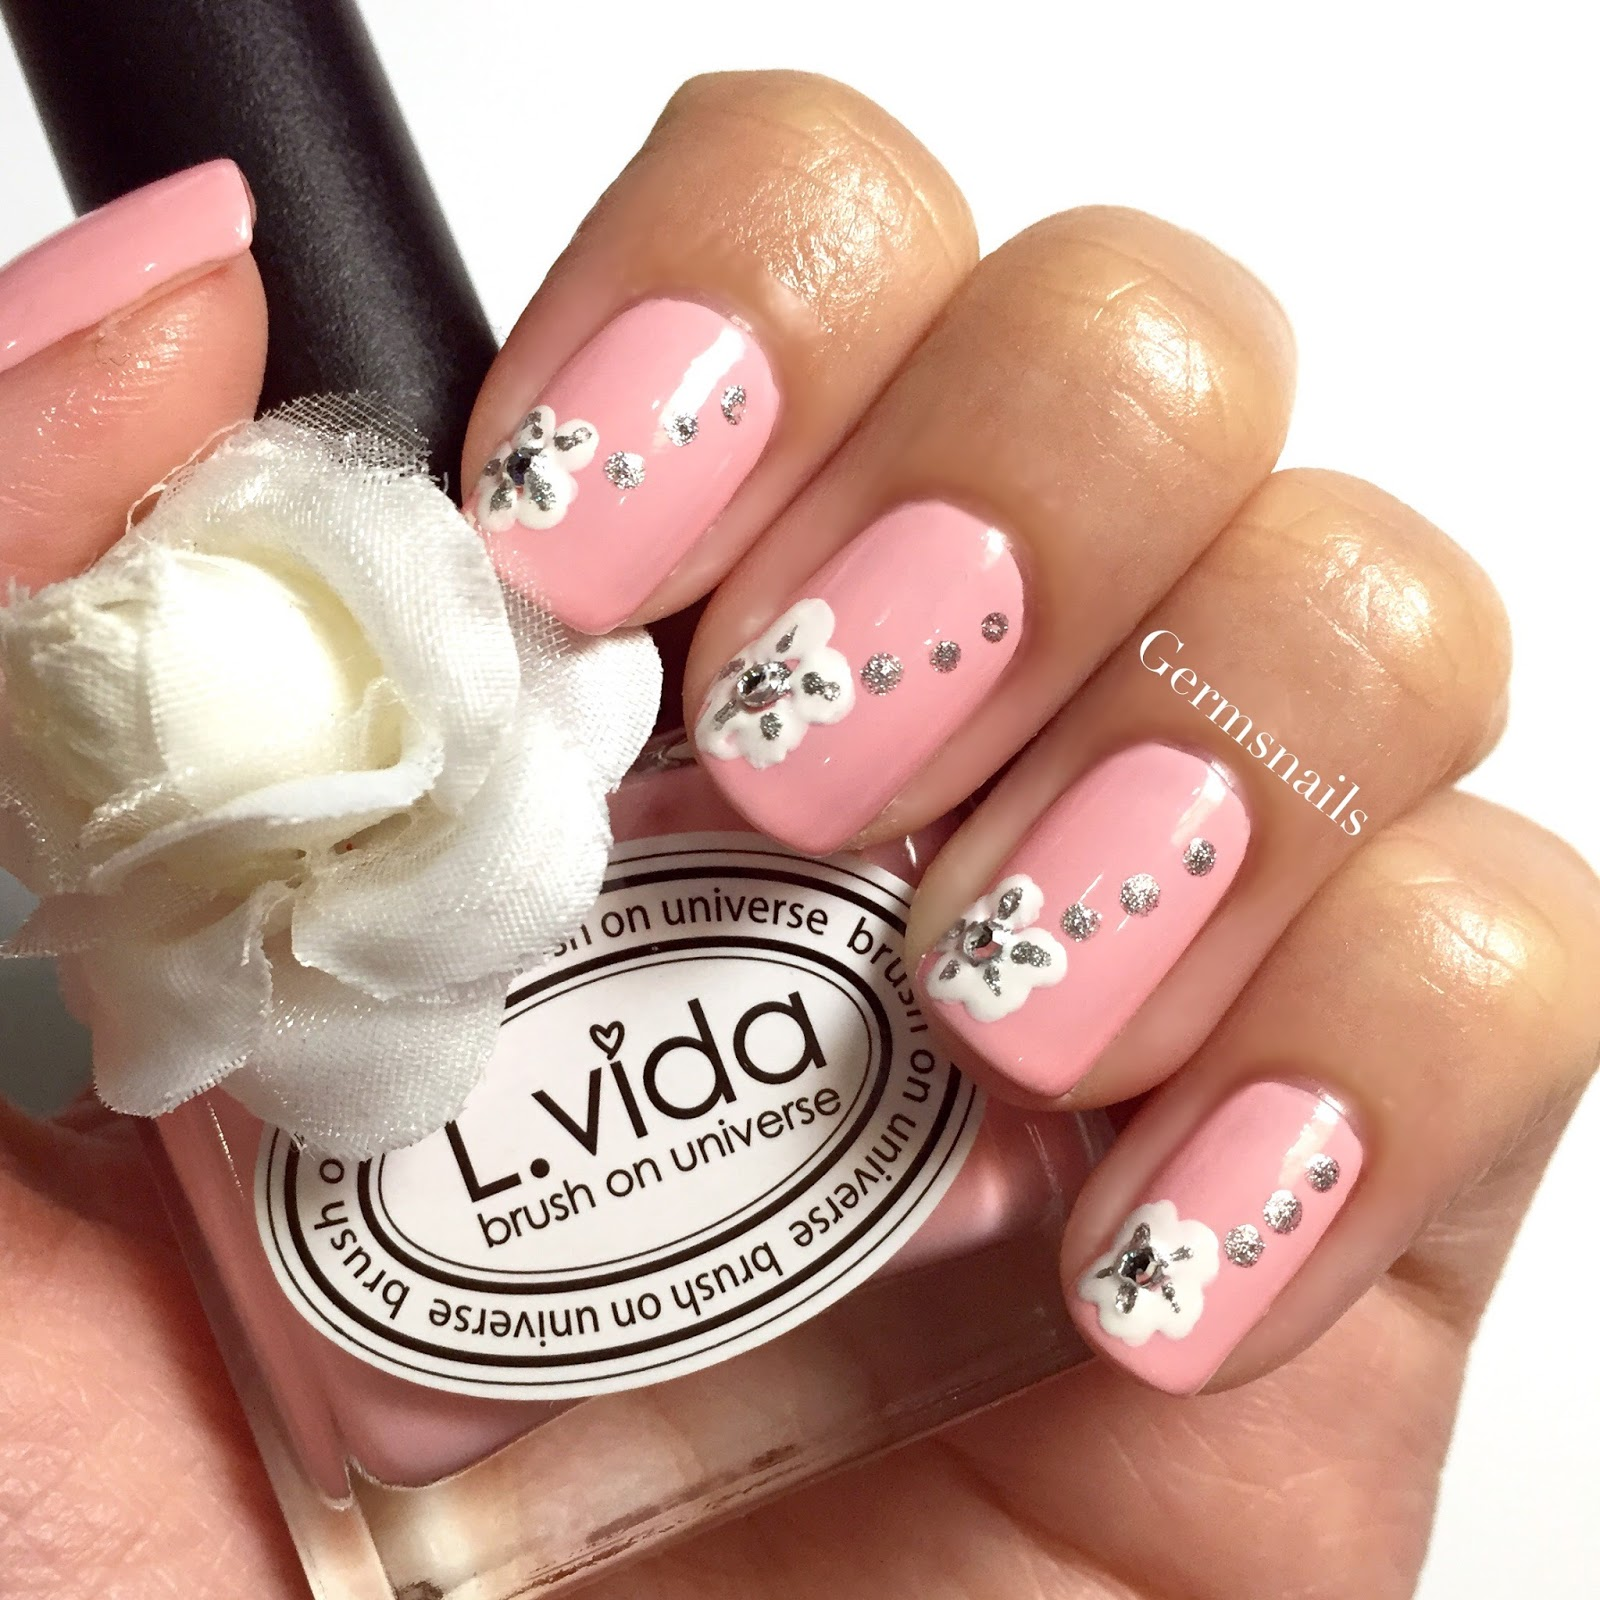 Nail art designs using gems spectacular d nail designs other image of nail art designs using gems prinsesfo Gallery